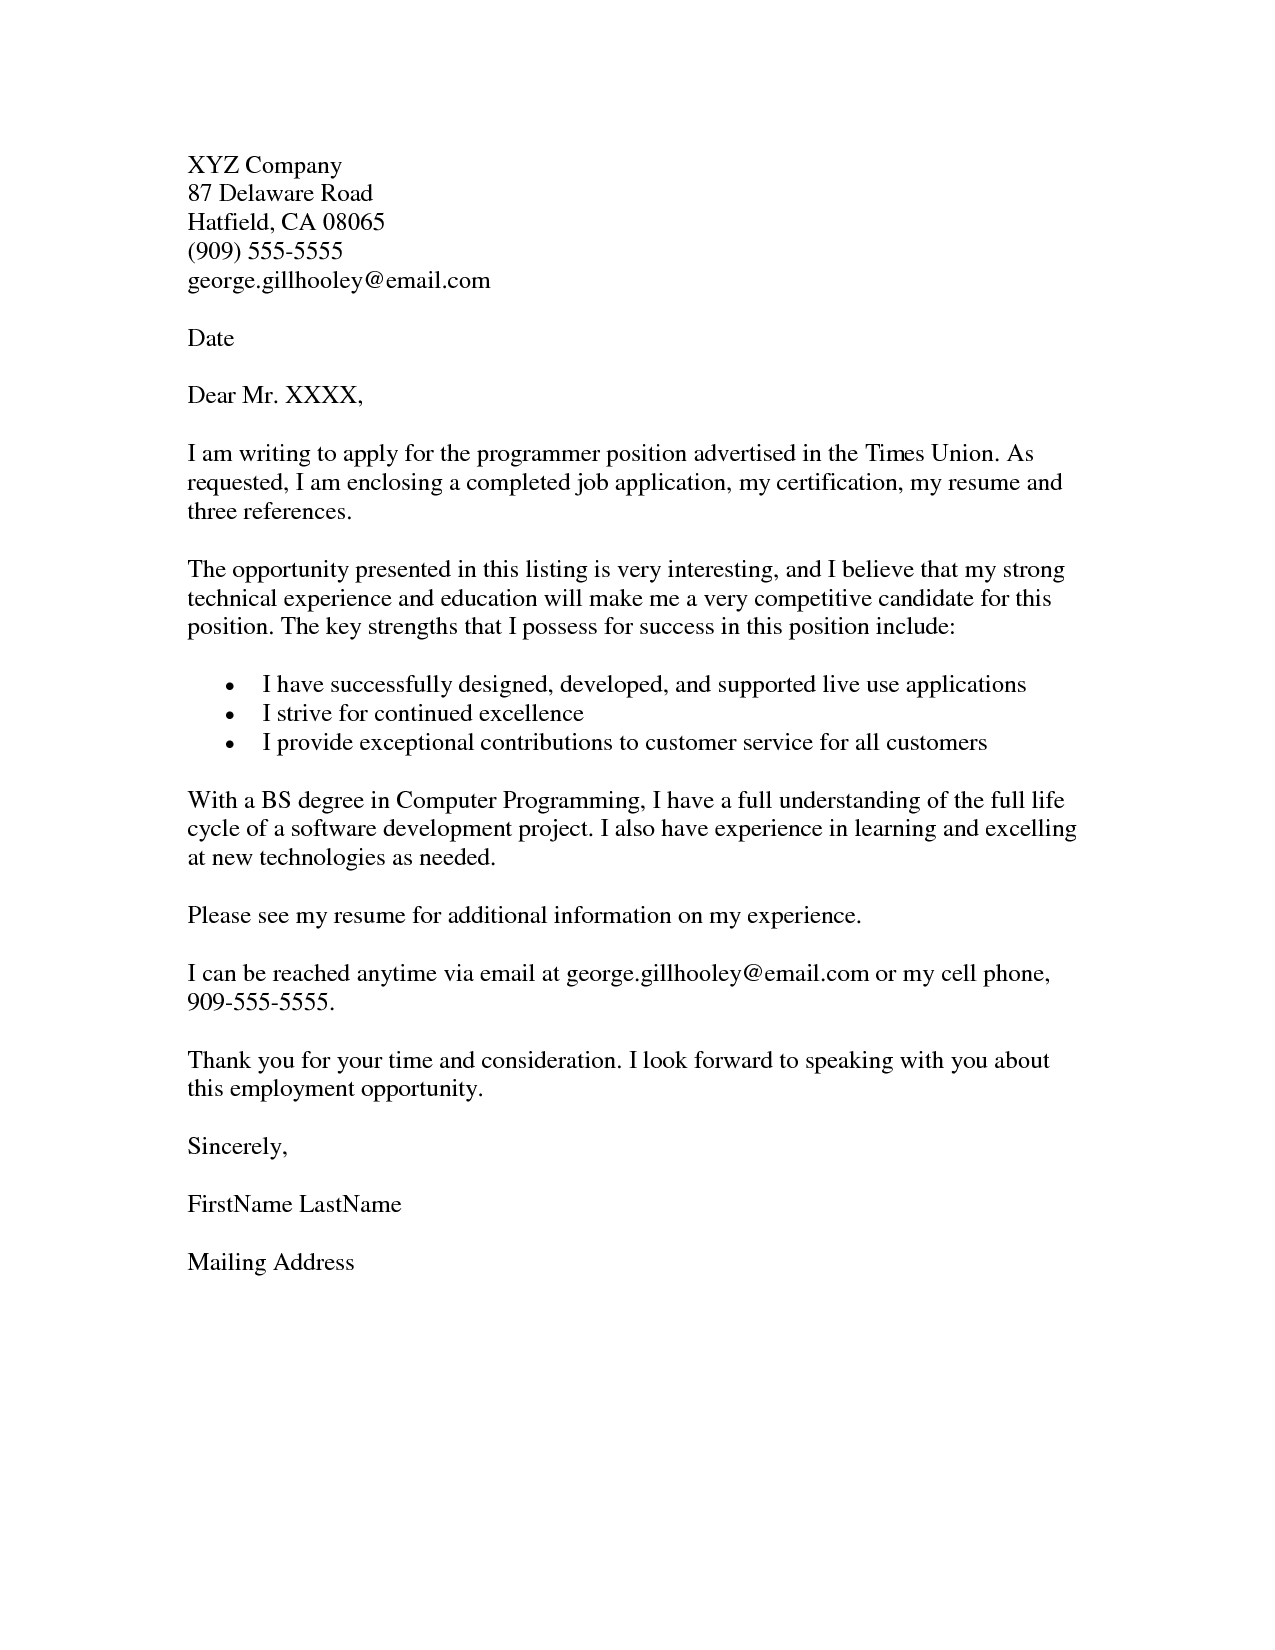 Cover letter sample cover letter for job application in for Cover letter for job aplication